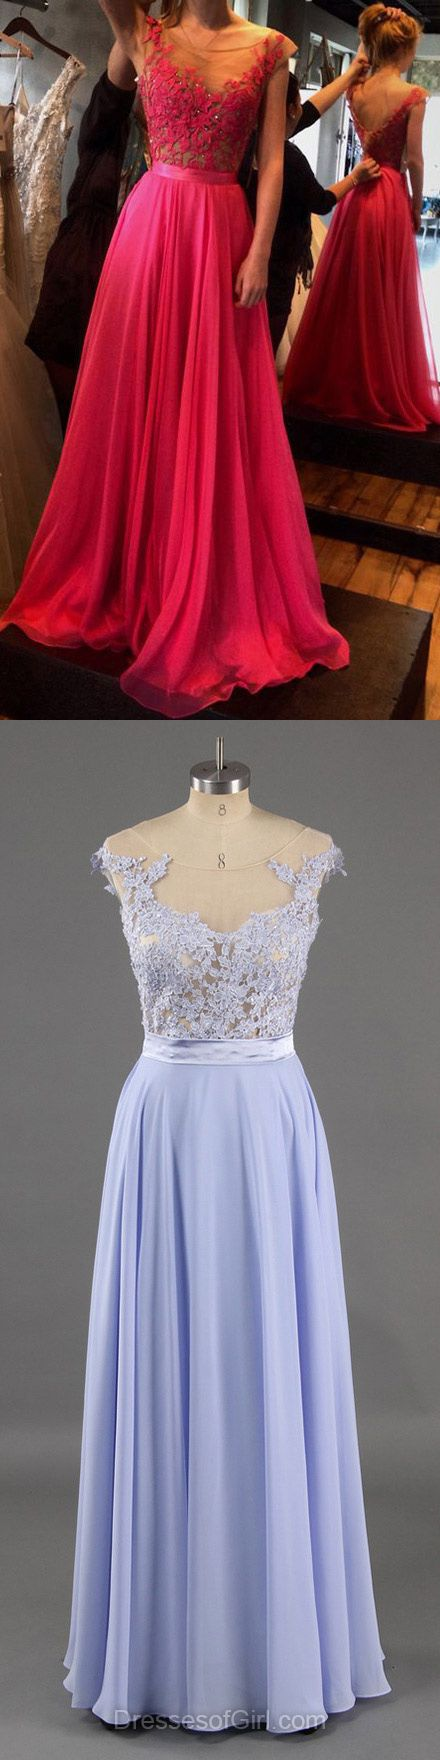 Scoop Neck Fuchsia Chiffon Tulle with Appliques Lace Cap Straps Prom Dress